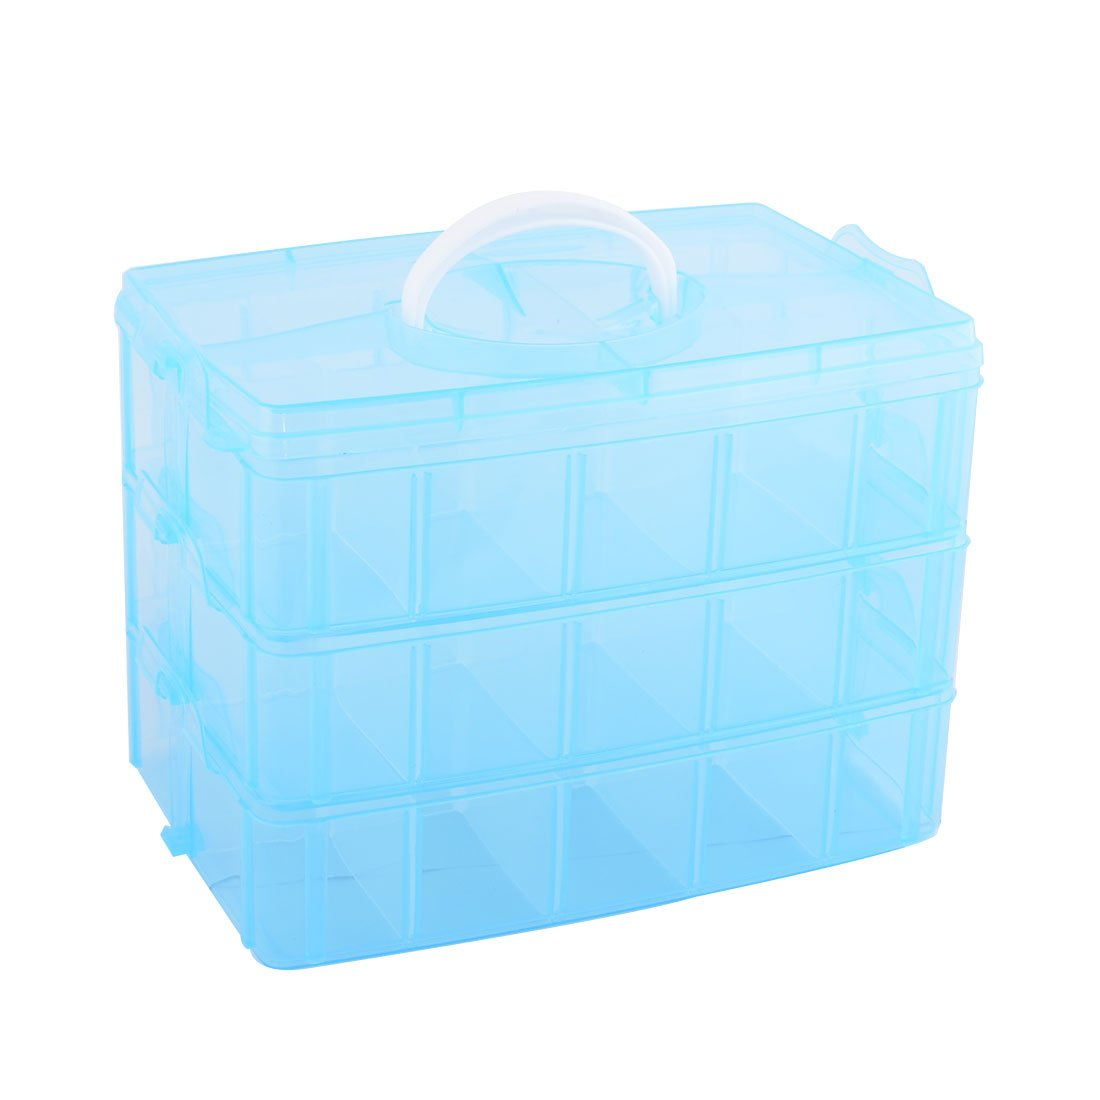 uxcell Plastic Travel 30 Compartments Trinket Cosmetic Holder Portable Storage Box Blue